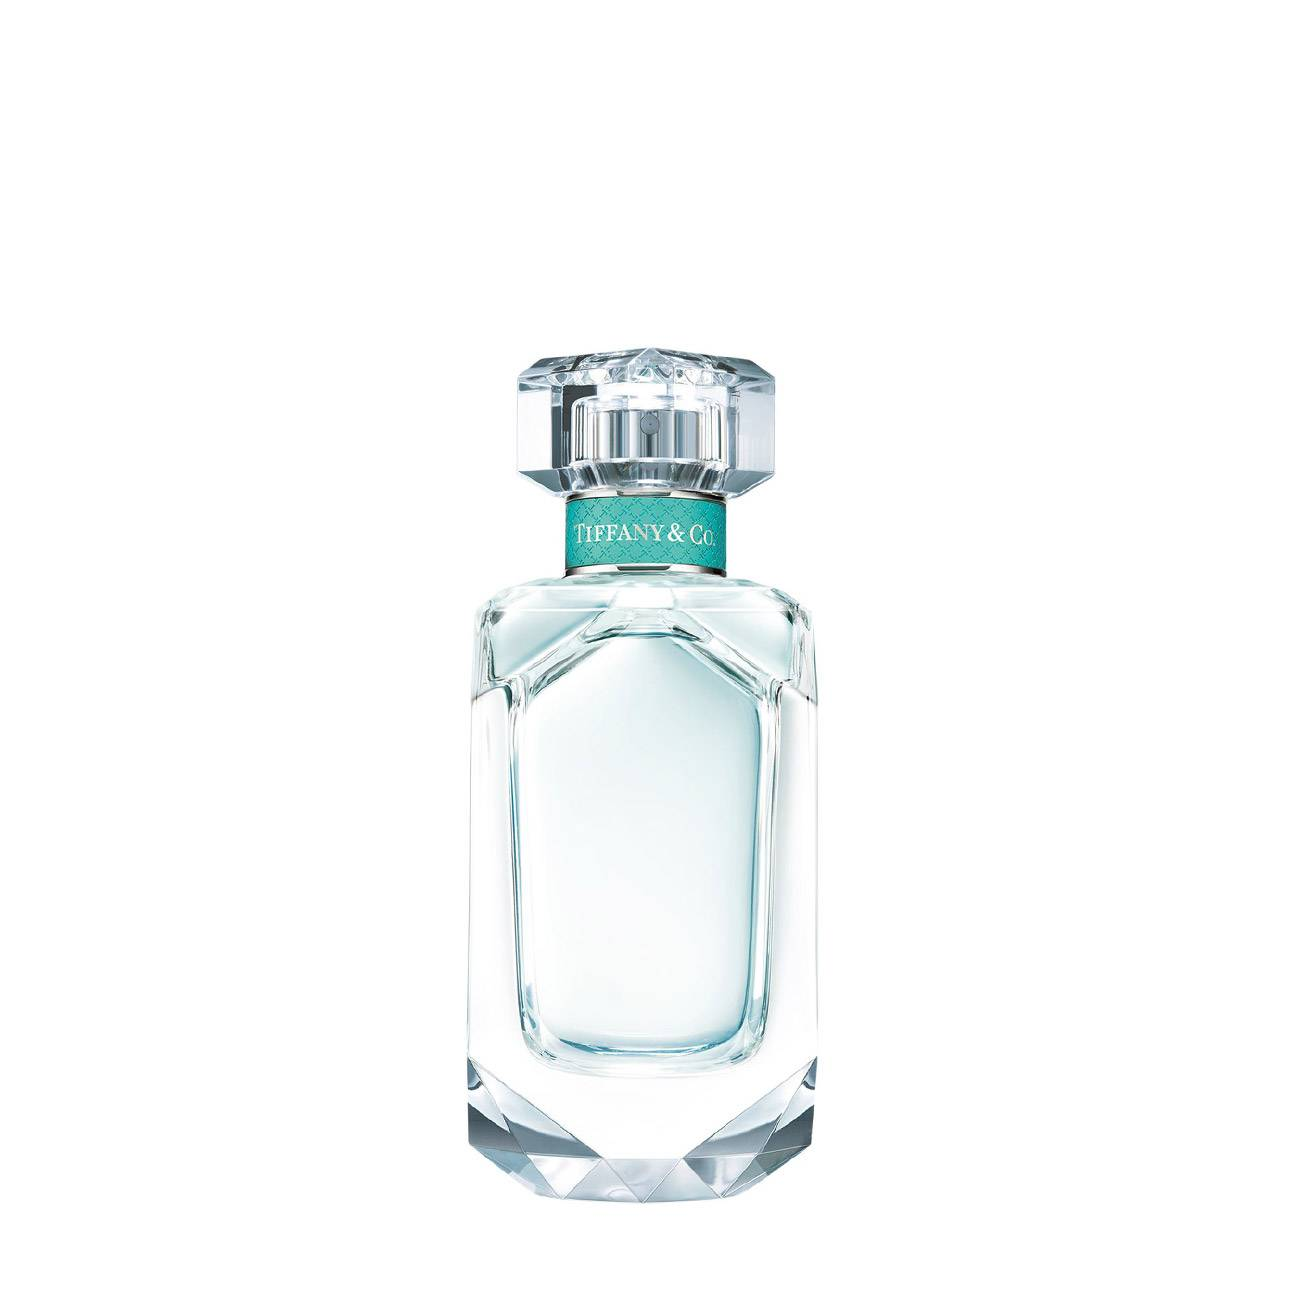 Tiffany & Co. Signature 50ml imagine